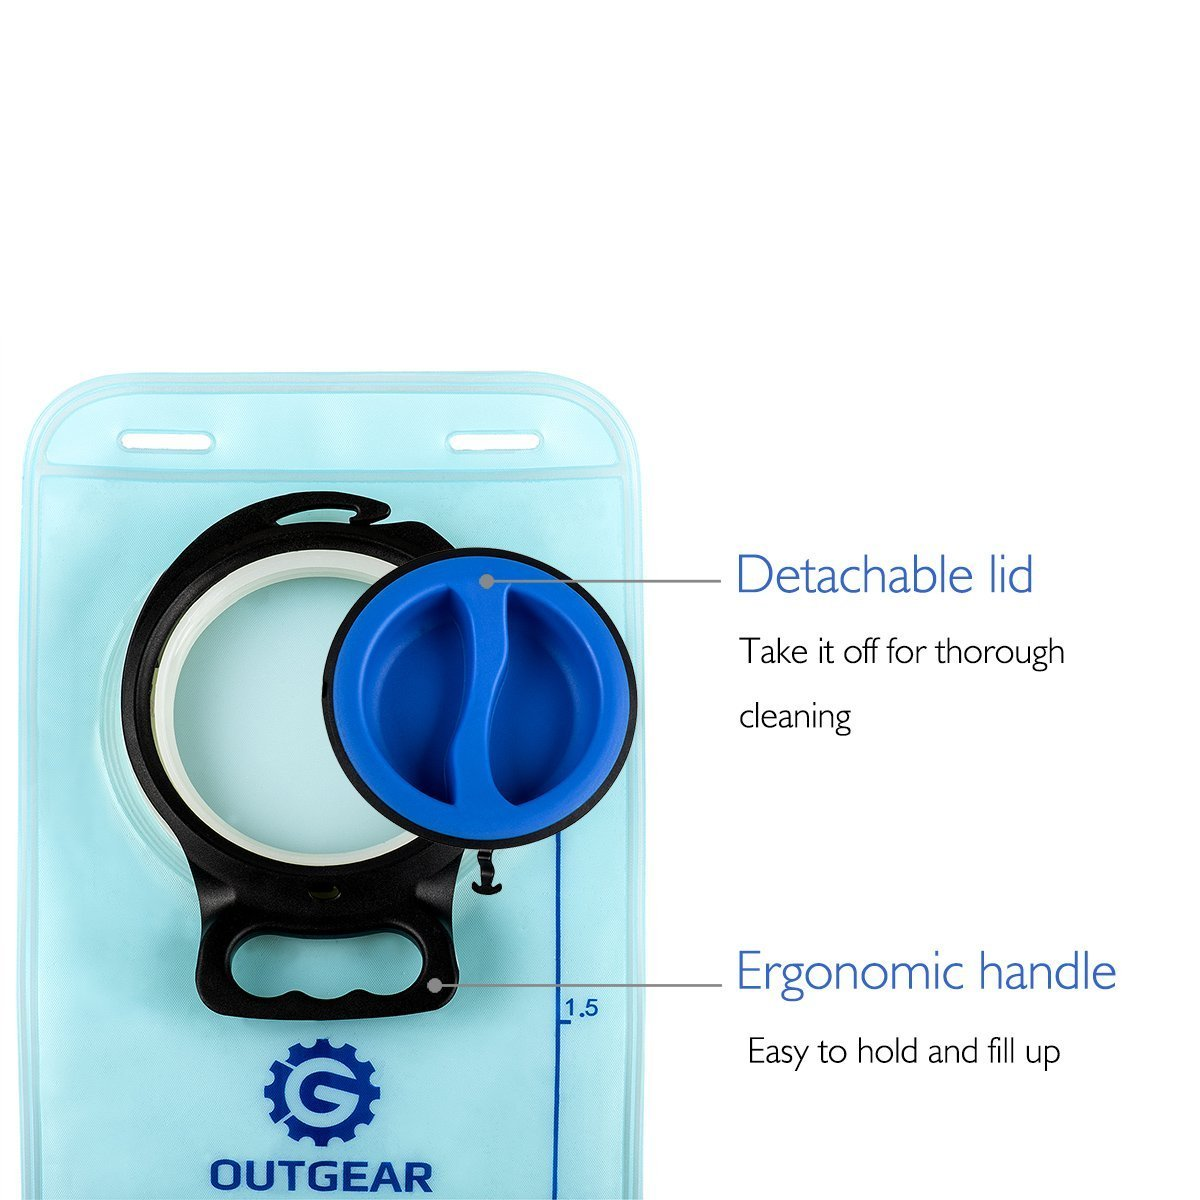 OUTGEAR Hydration Bladder 2L 70OZ Water Reservoir, BPA Free, Leak-Proof, Easy Clean for Bicycling Hiking Camping Hunting Running with Backpack by OUTGEAR (Image #4)